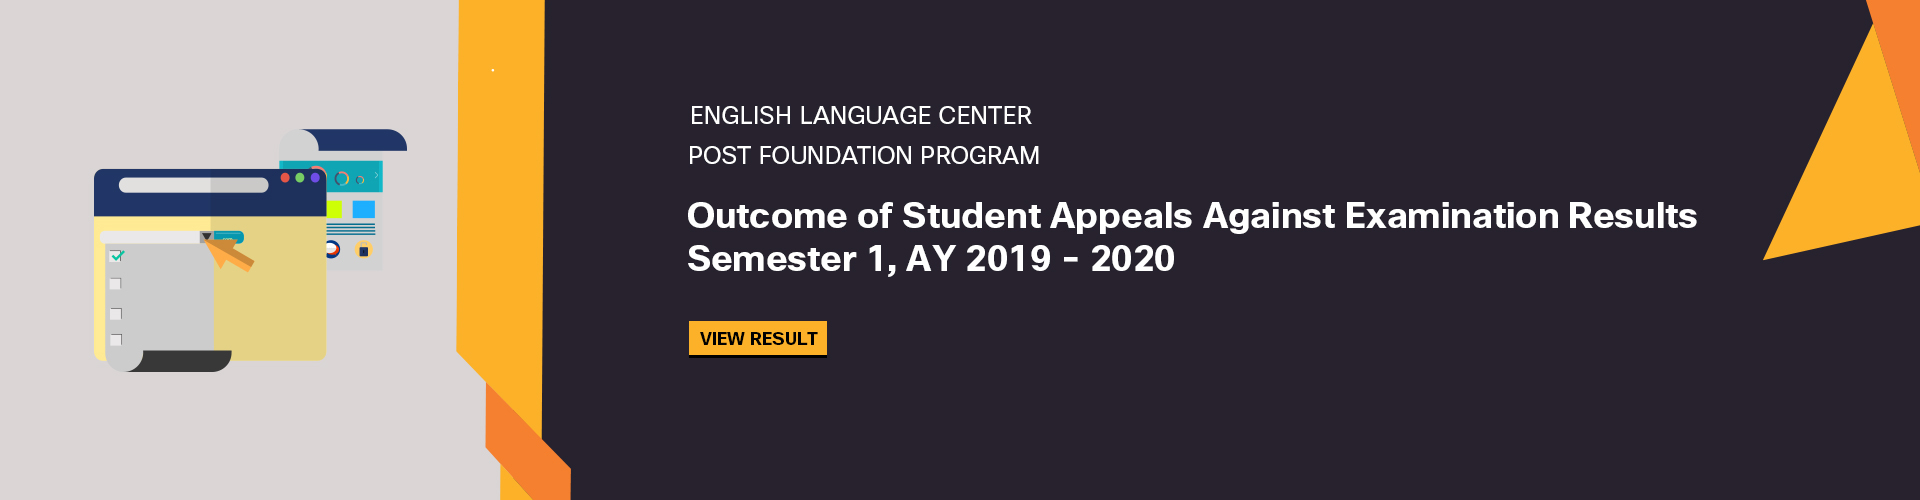 ELC Post Foundation Program- Outcome of Appeals Against Examination Results of Semester 1, 2019-2020